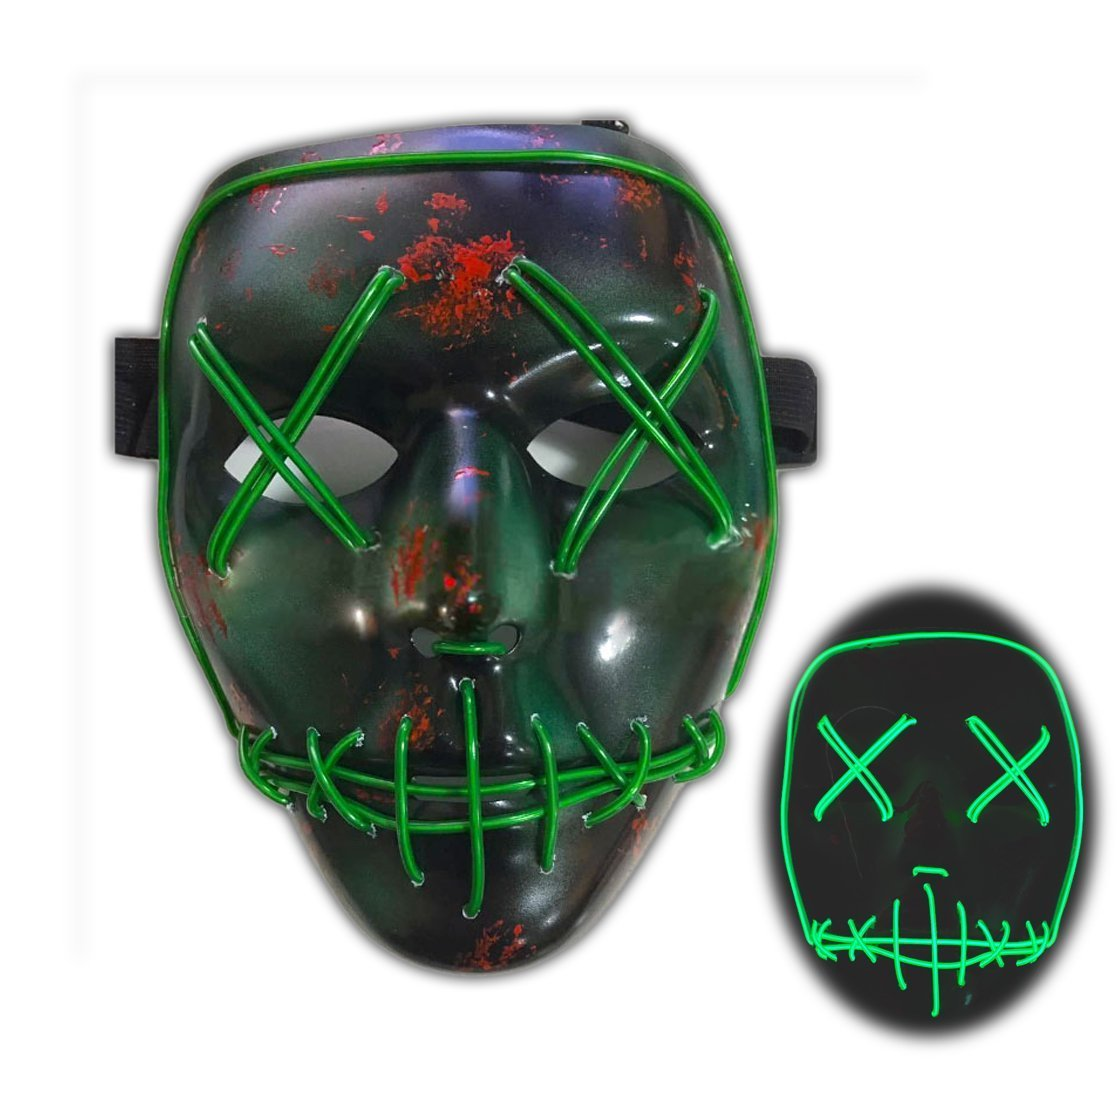 DUUTY Led Scary Mask Halloween Cosplay Light Up Masquerade Rave Masks El Wire for Festival Party Costumes Purge Light Green